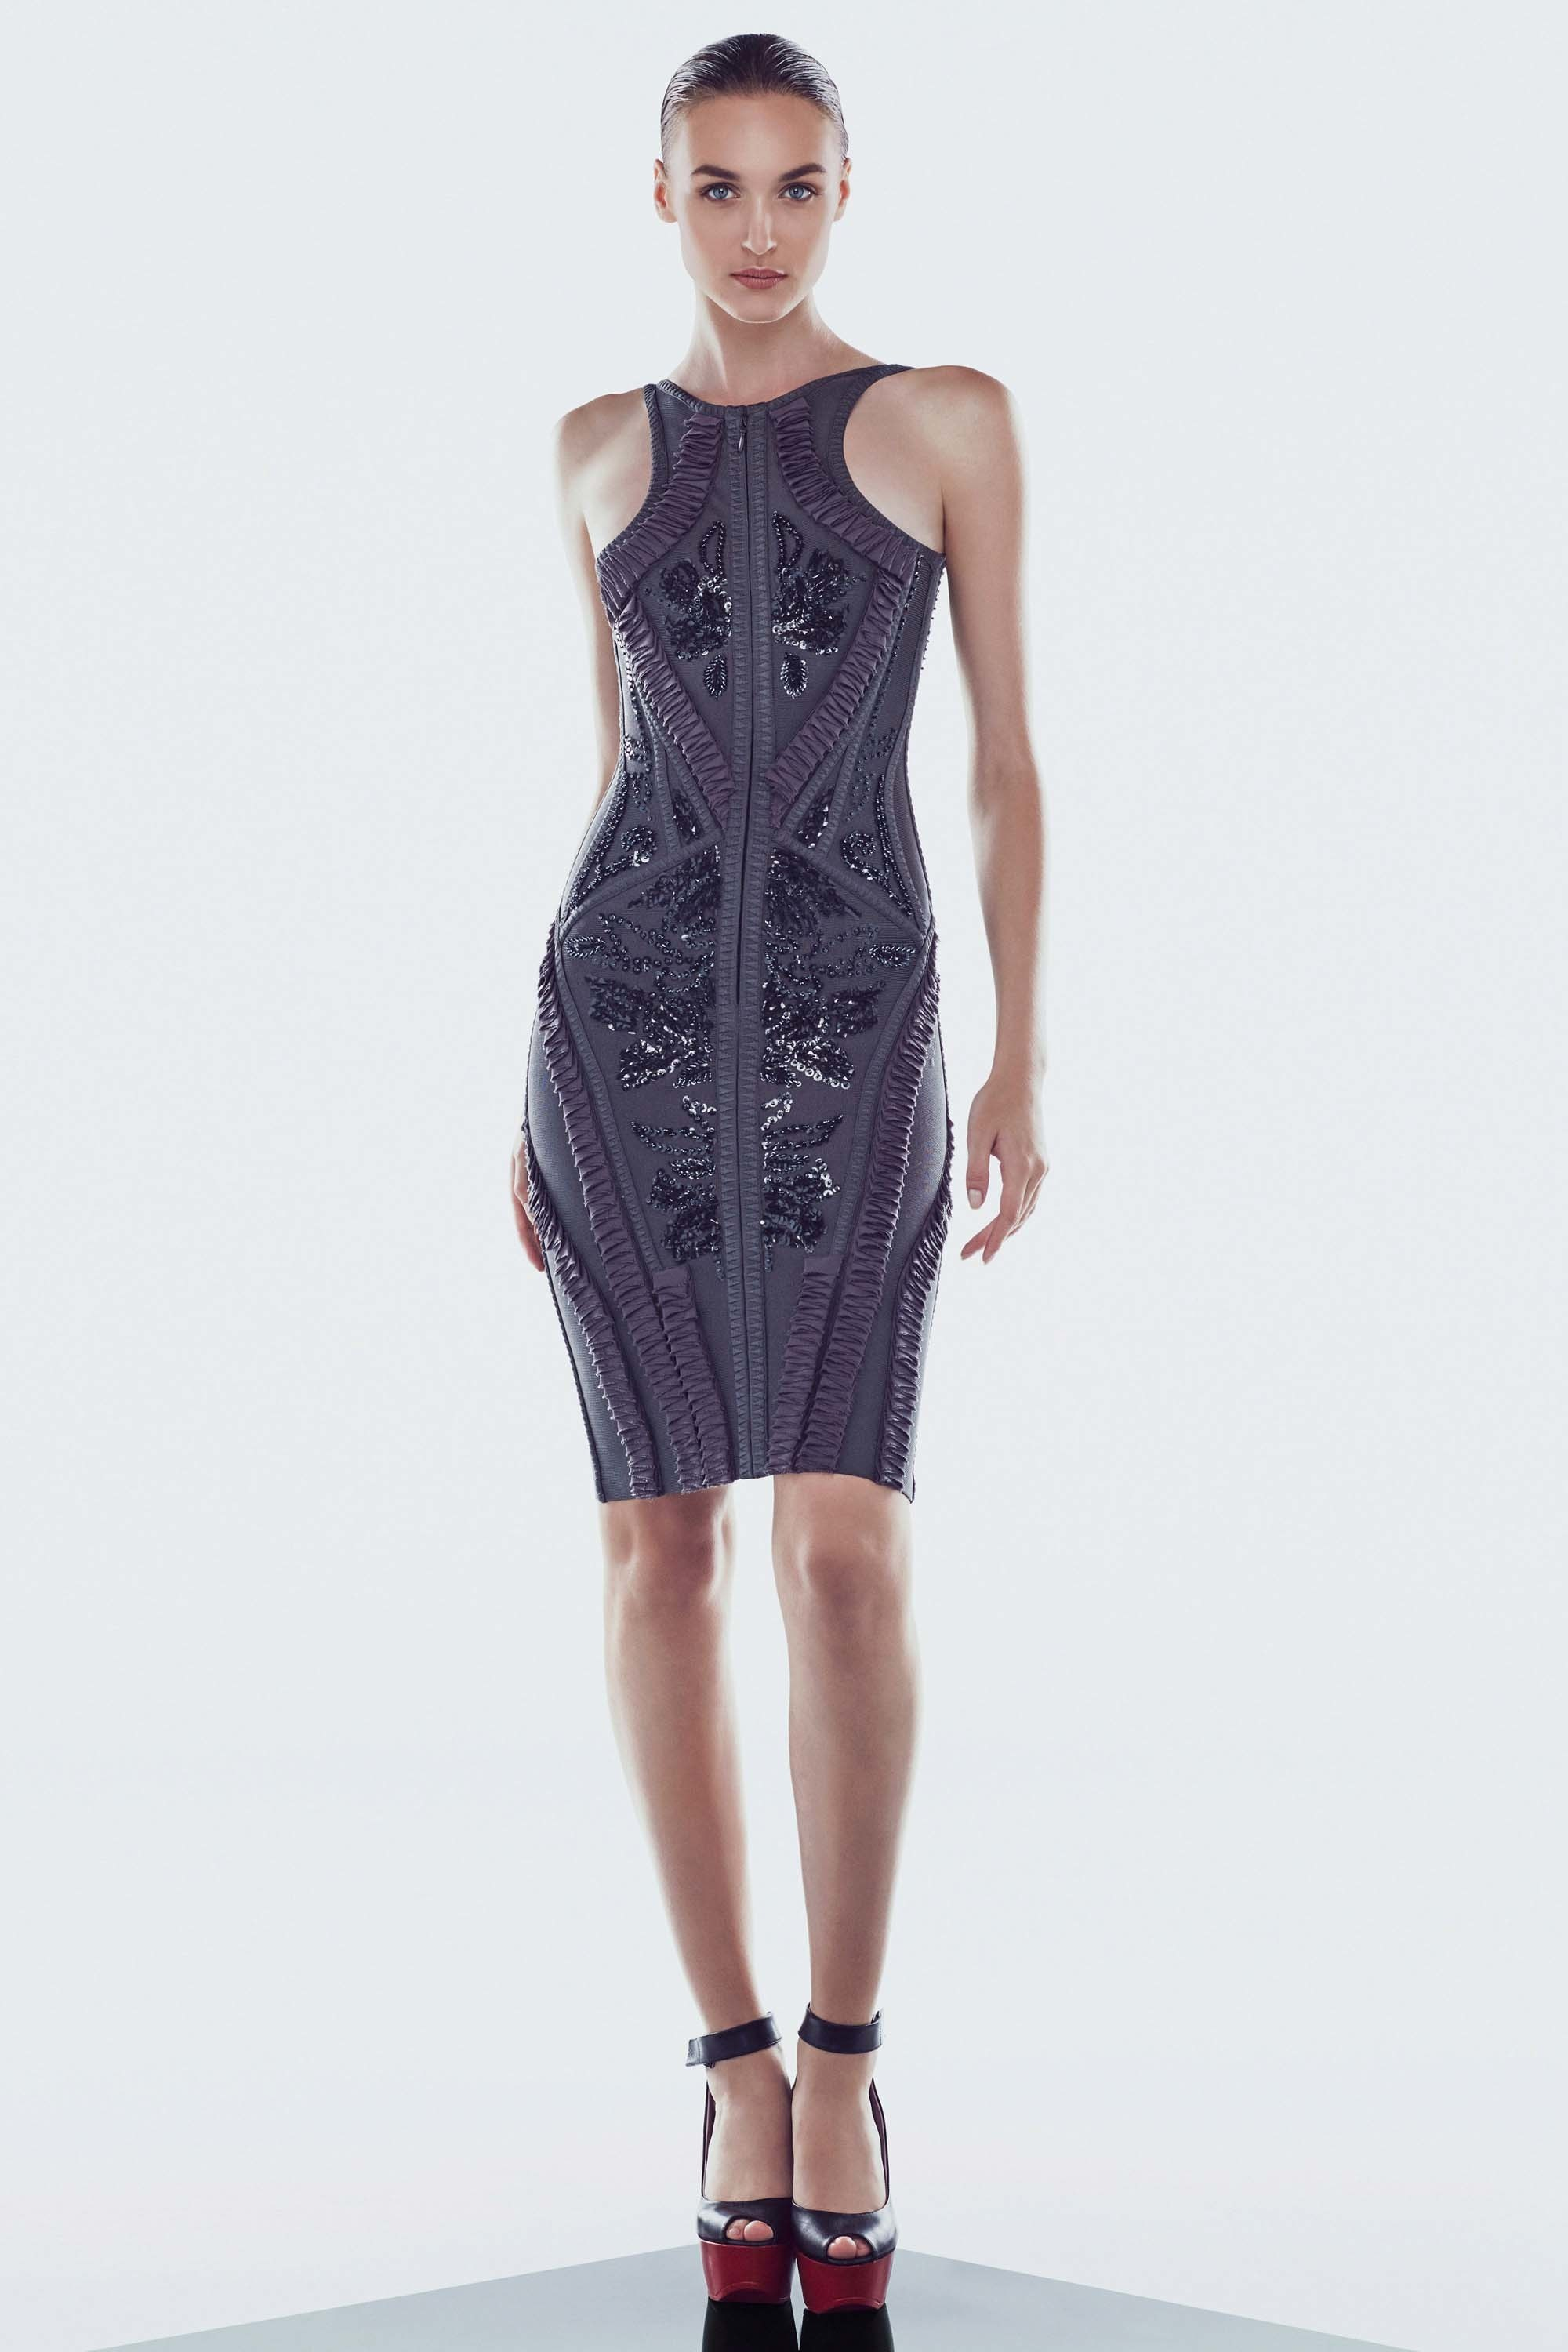 Herve Leger Resort 2017 collection season dresses clothing swimsuit